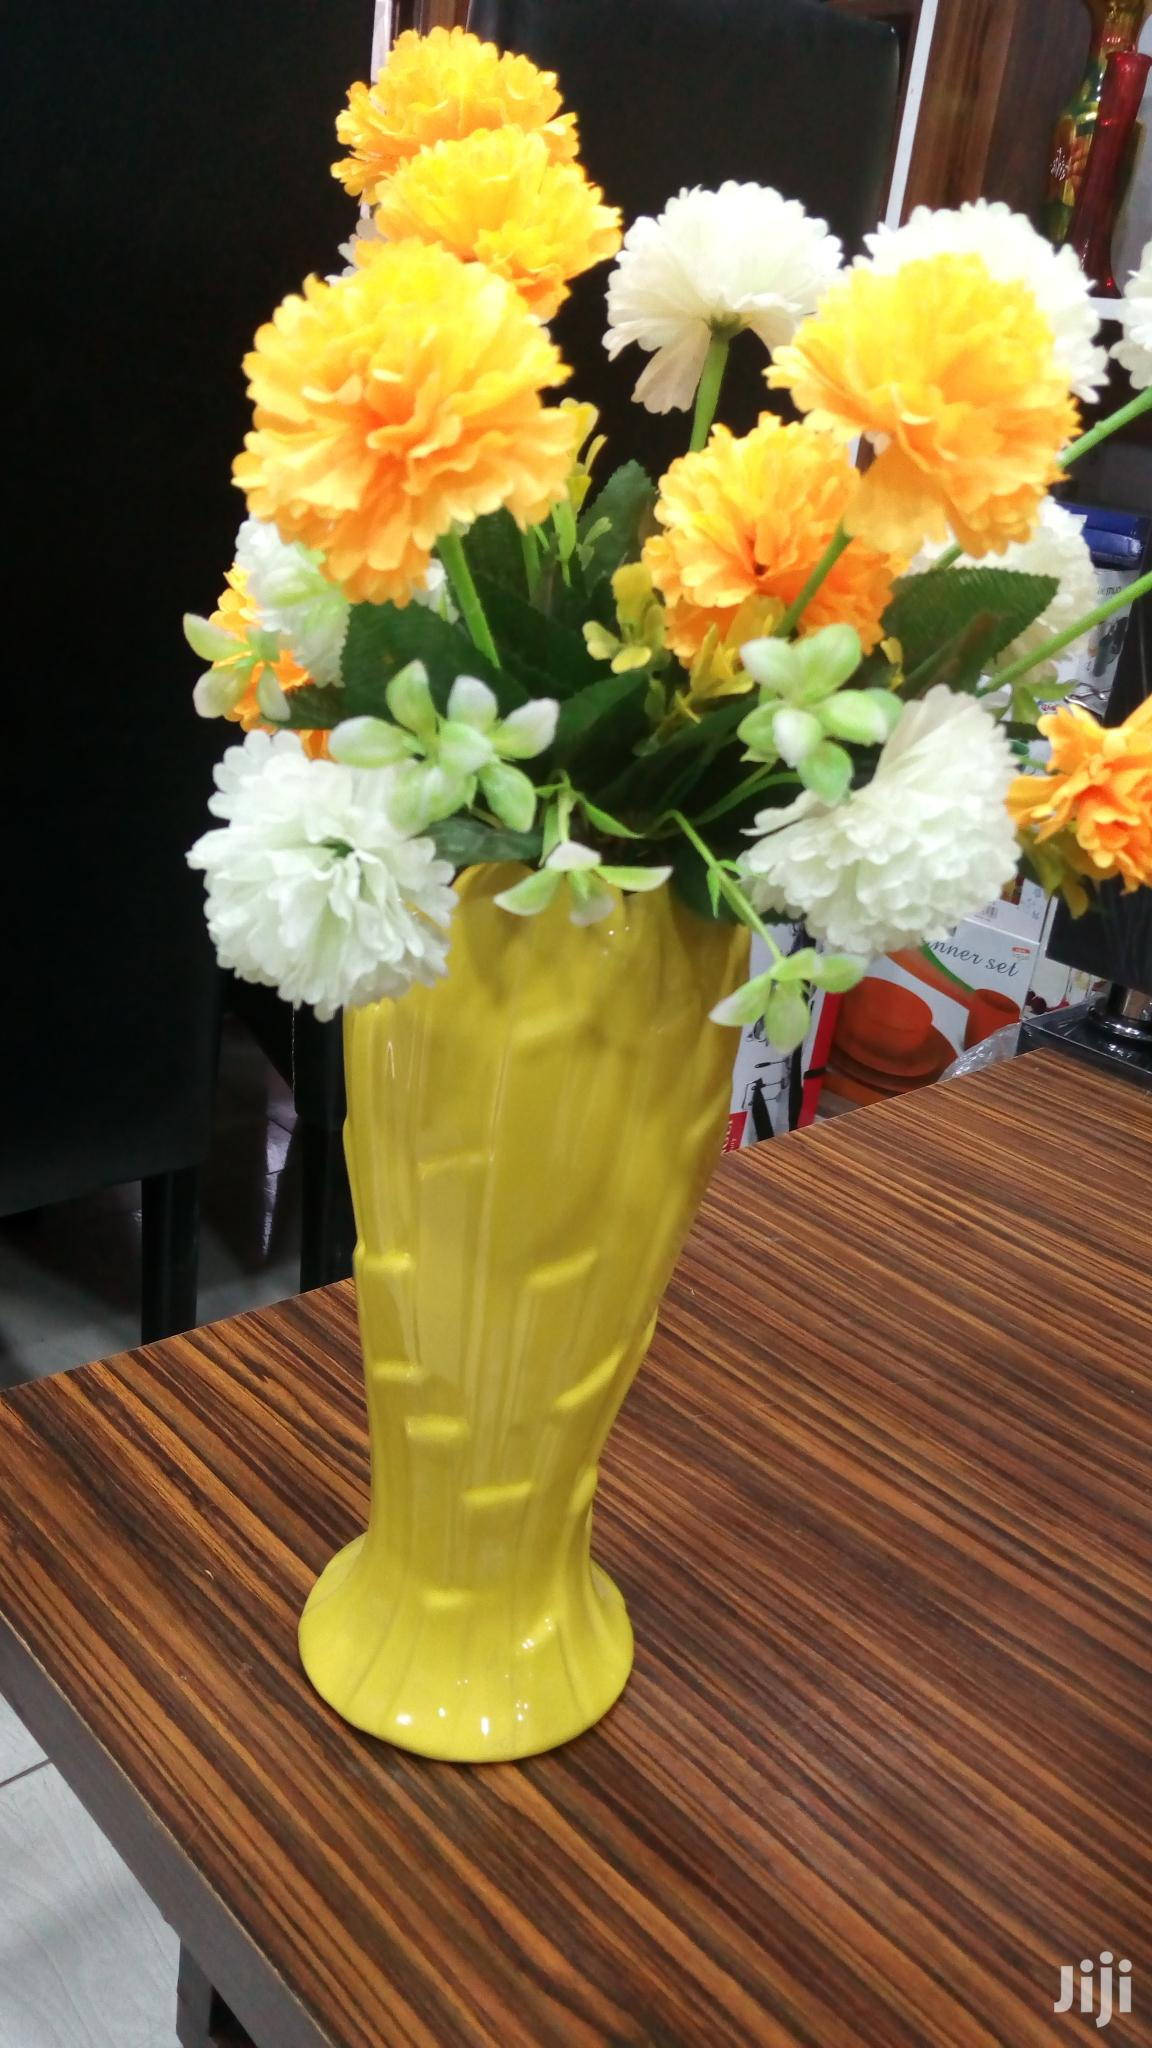 Flower Vase   Home Accessories for sale in Surulere, Lagos State, Nigeria